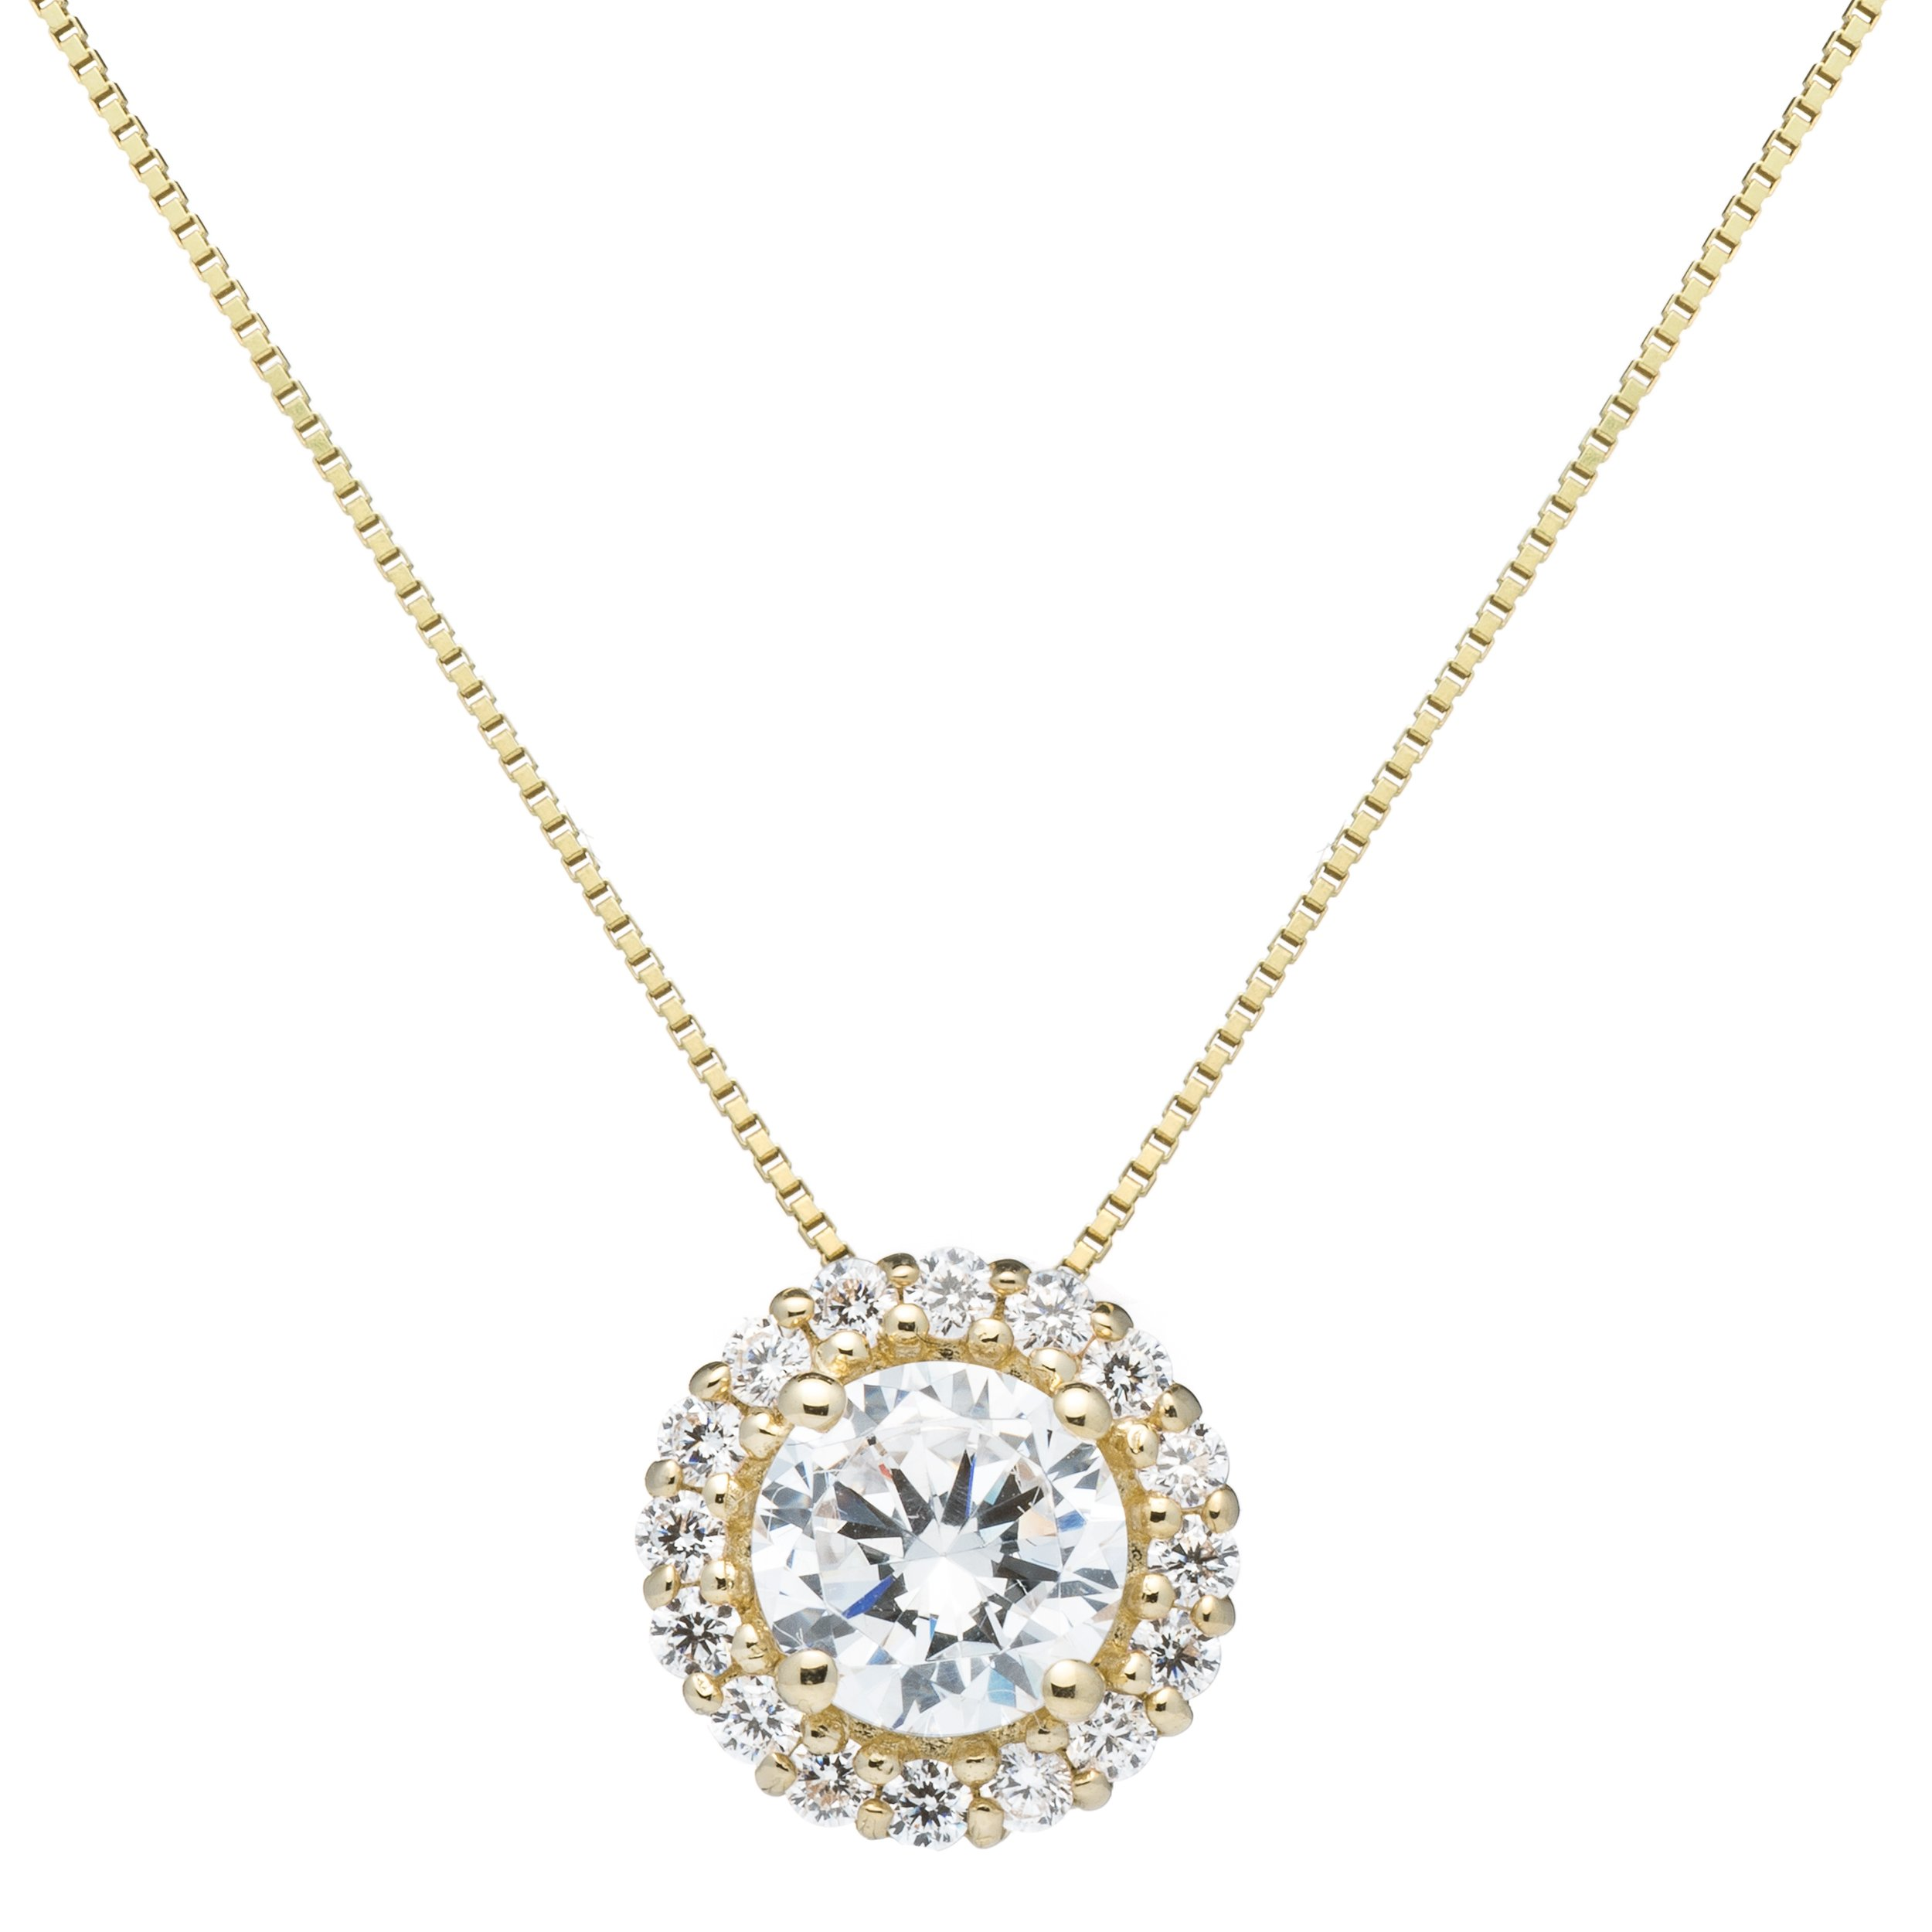 14K Solid Yellow Gold Round Cut Cubic Zirconia Solitaire Pendant Necklace (1.0 ct center, 1.24 cttw), 18 inch .60mm Box Link Chain, Gift Box